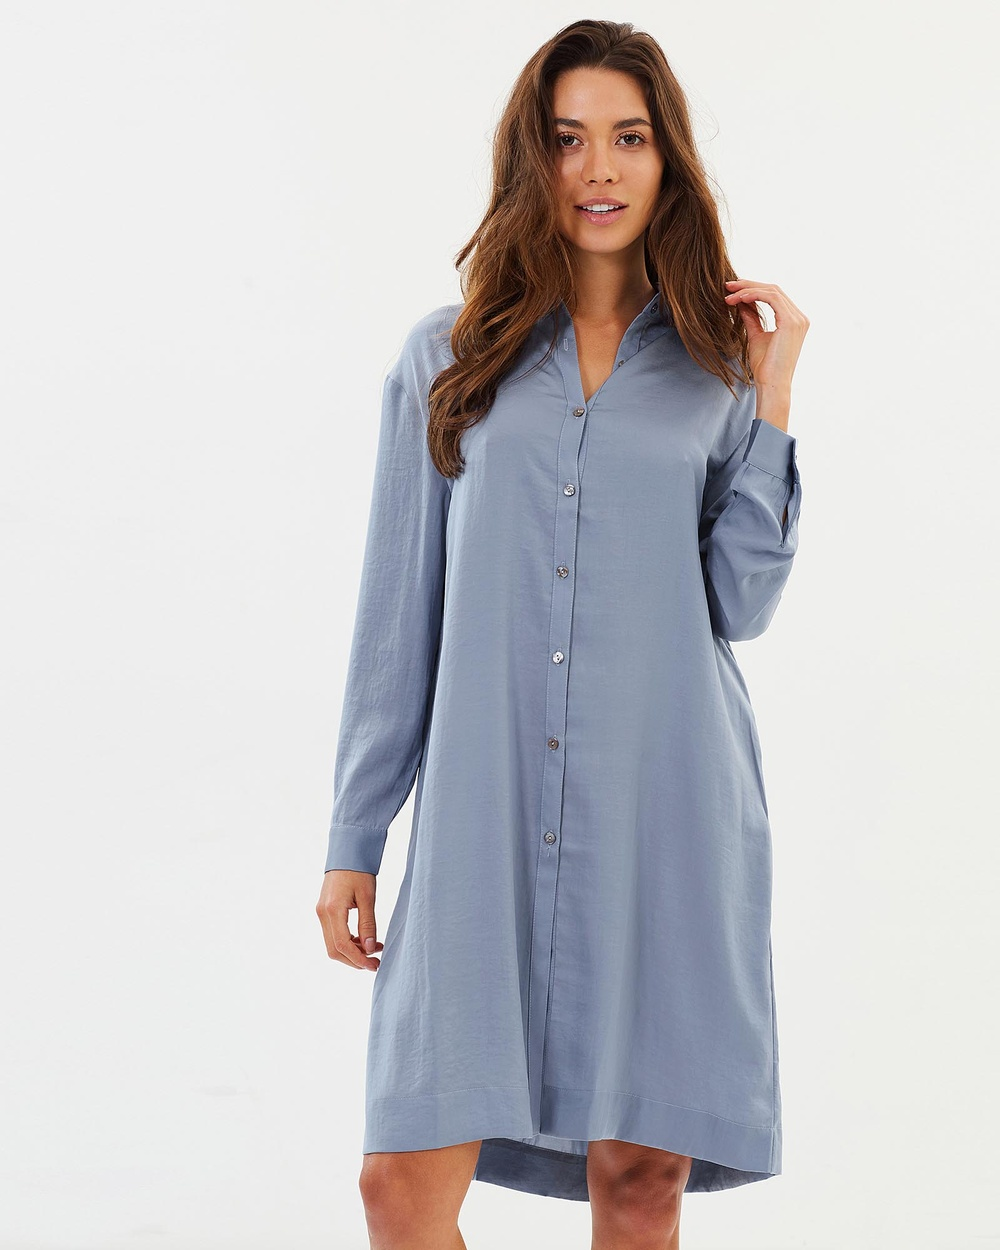 Privilege Primrose Lace Up Shirt Dress Dresses Dusty Blue Primrose Lace Up Shirt Dress